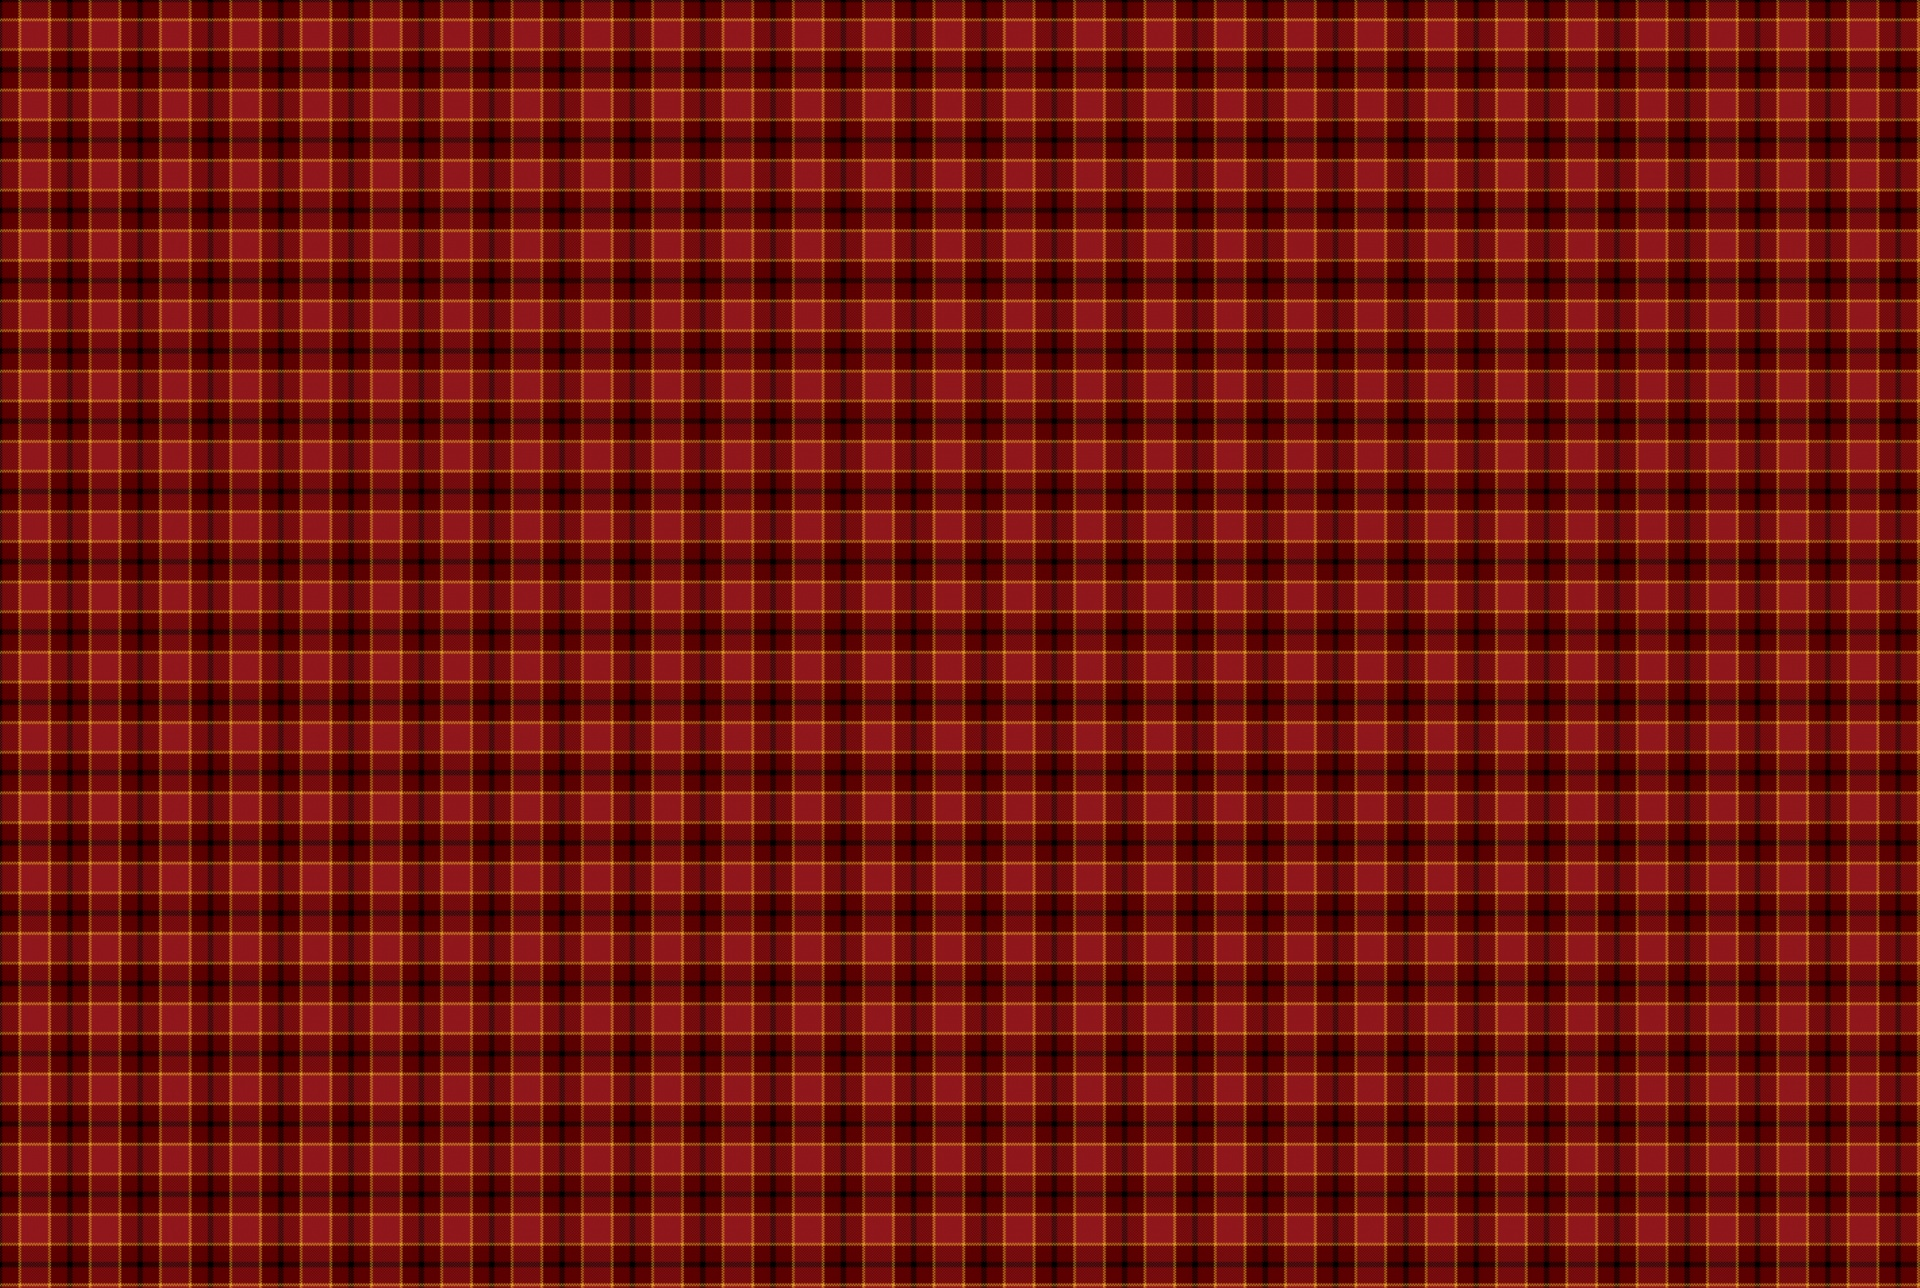 Christmas Images Free For Commercial Use.Christmas Tartan Plaid Backing Background Paper Wallpaper